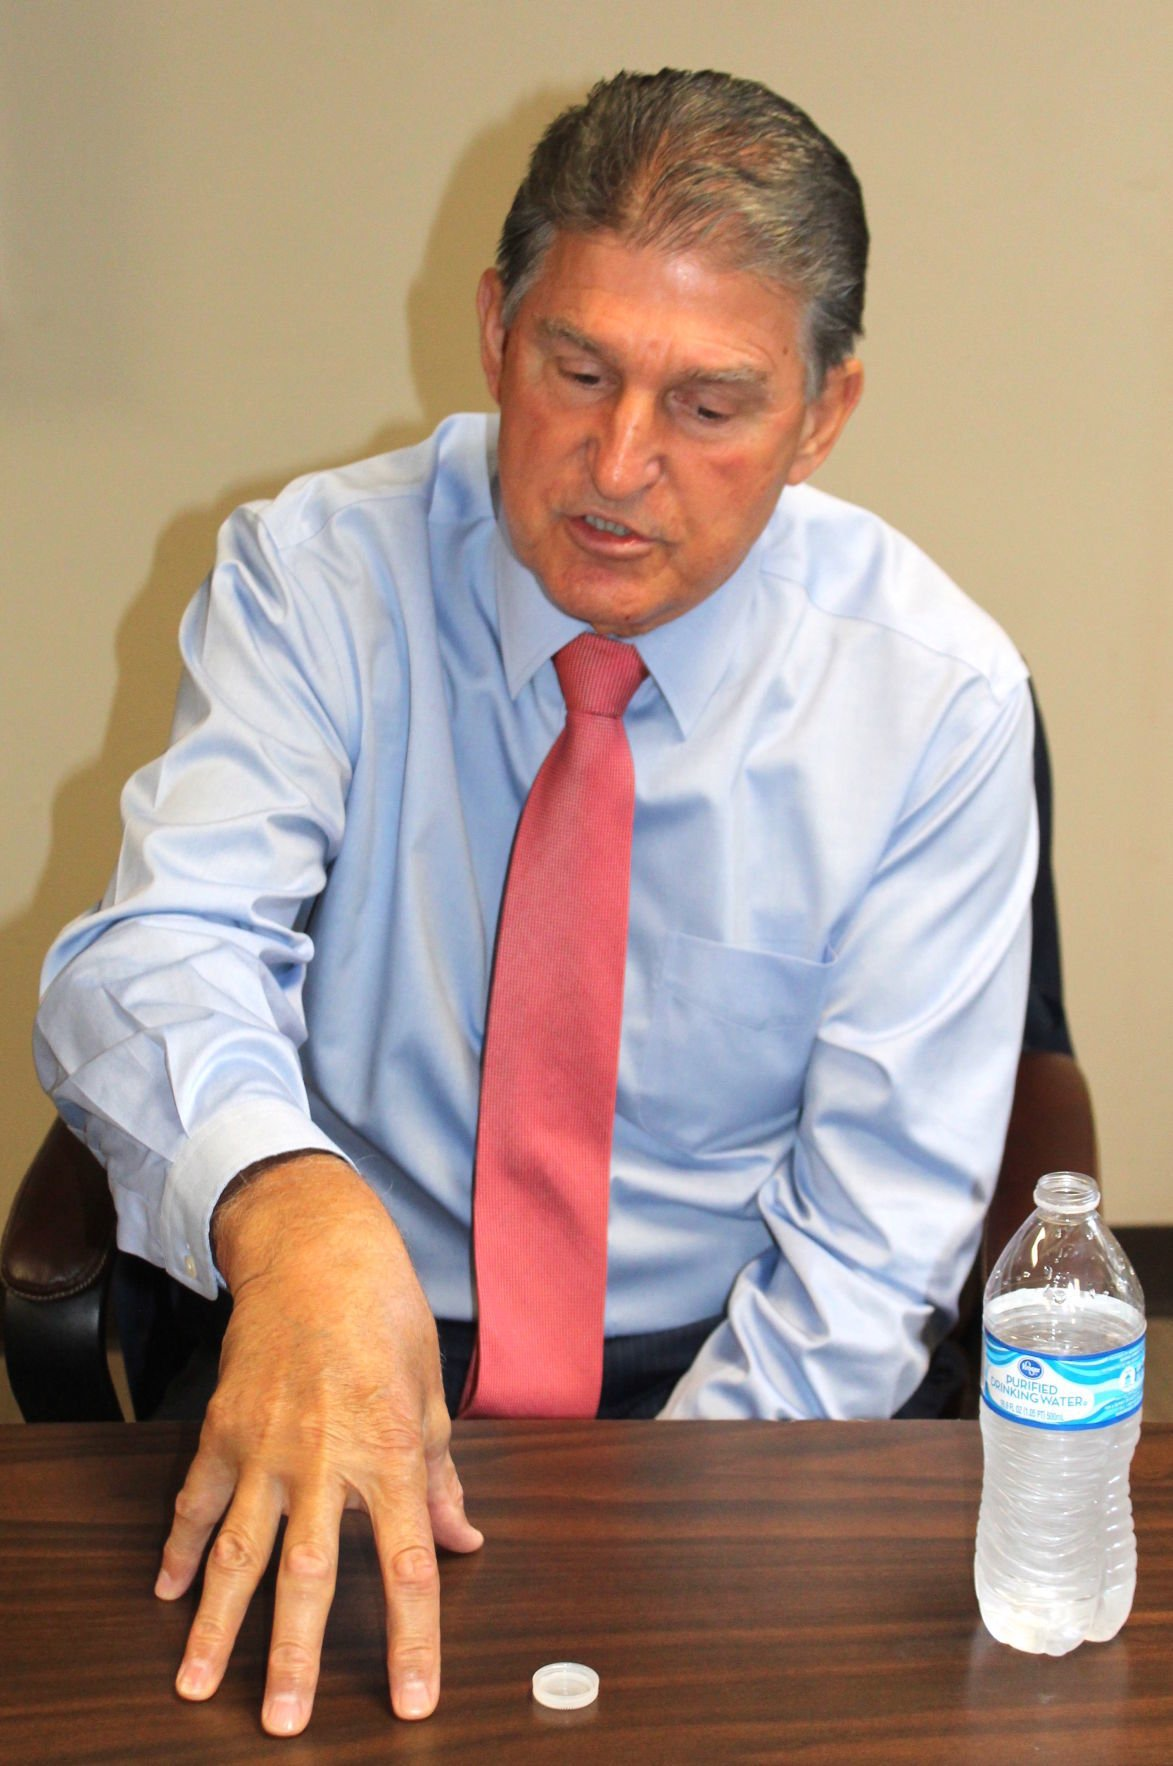 Manchin remains undecided